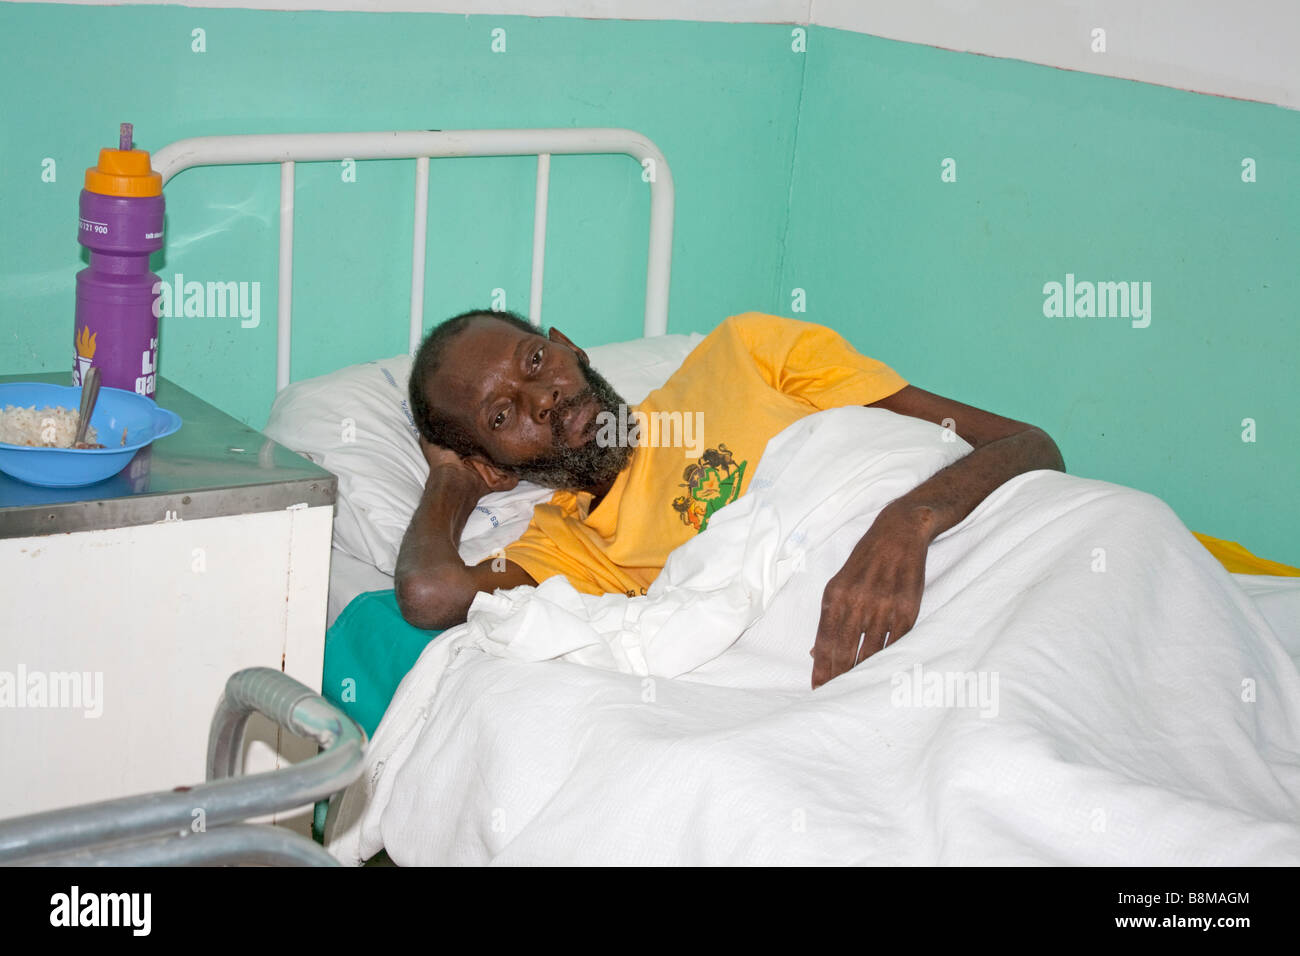 Bed Aids Aids Patient Bed Stock Photos Aids Patient Bed Stock Images Alamy